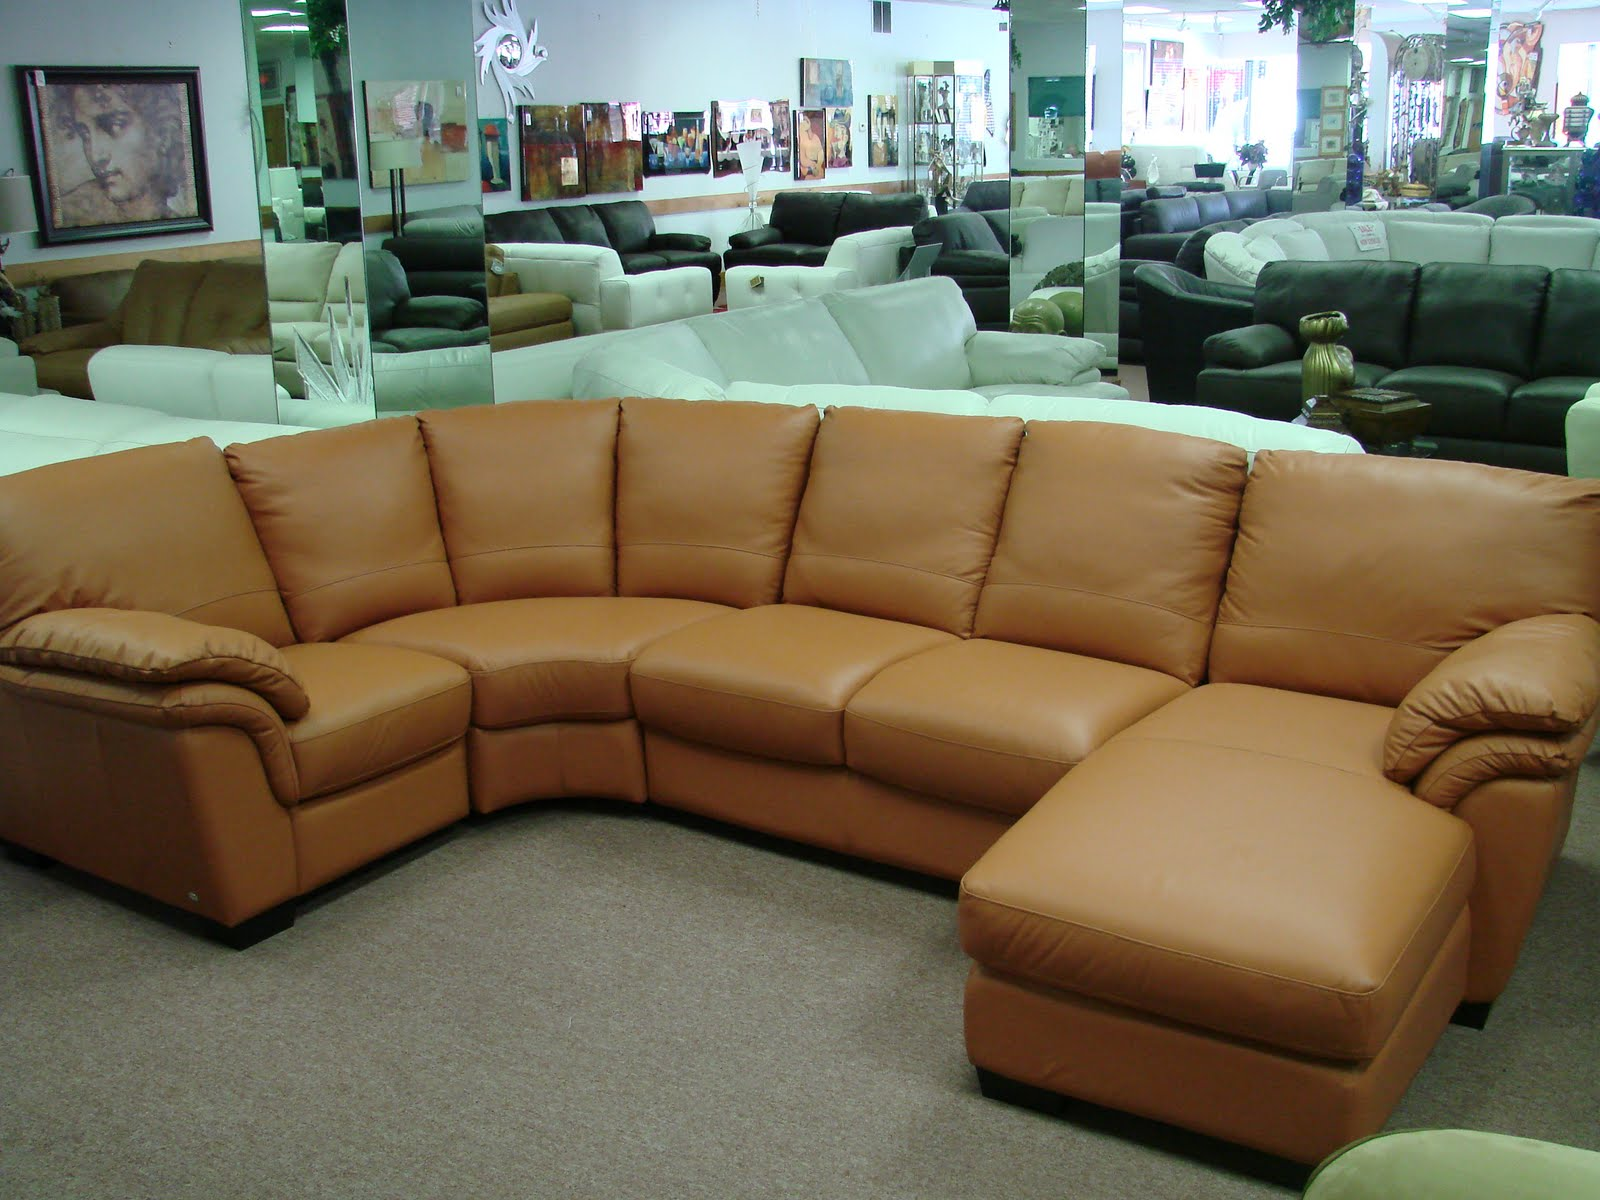 sofa mart labor day sale metal bed frame natuzzi leather sofas and sectionals by interior concepts